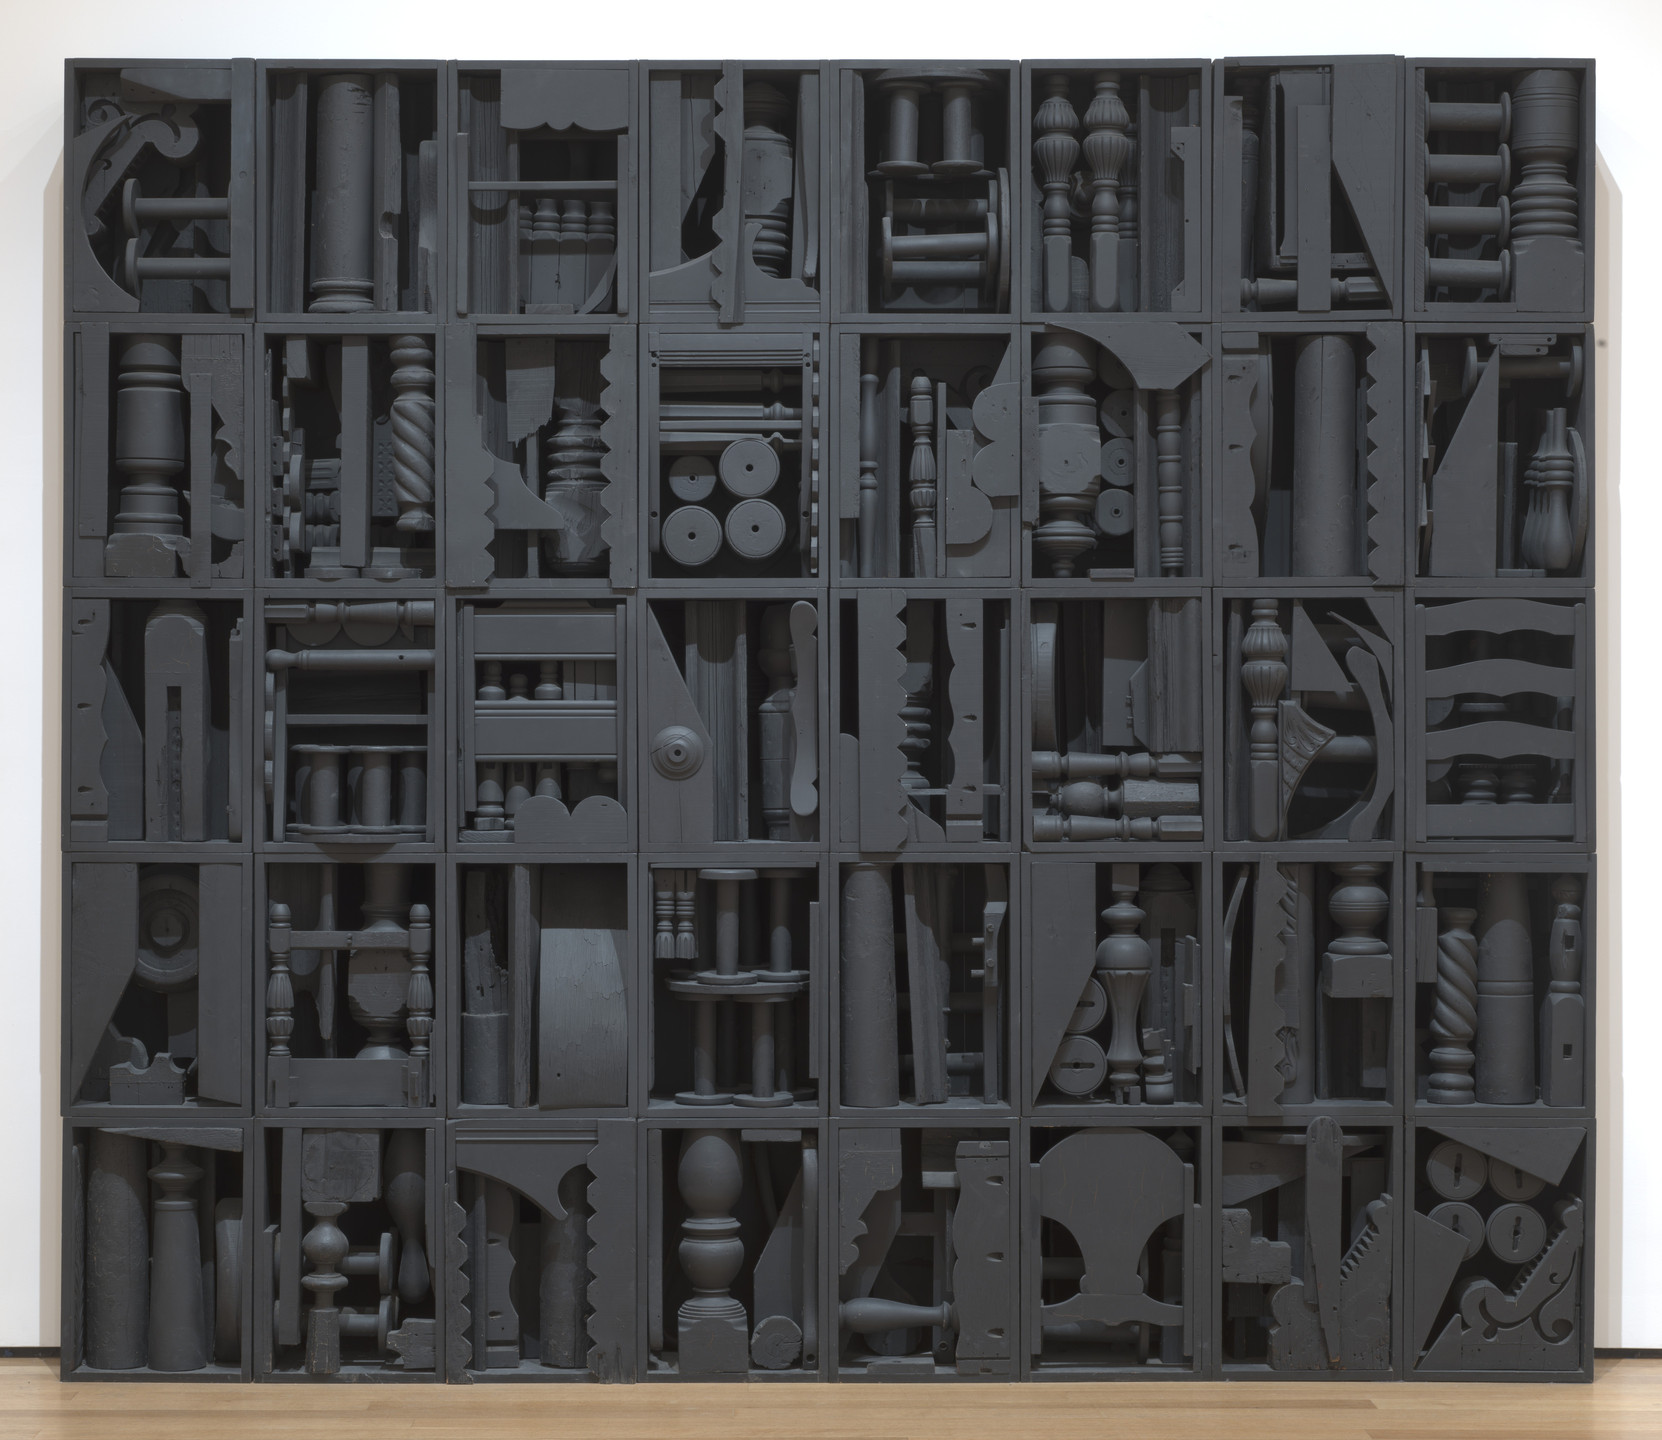 Louise Nevelson. Big Black. 1963